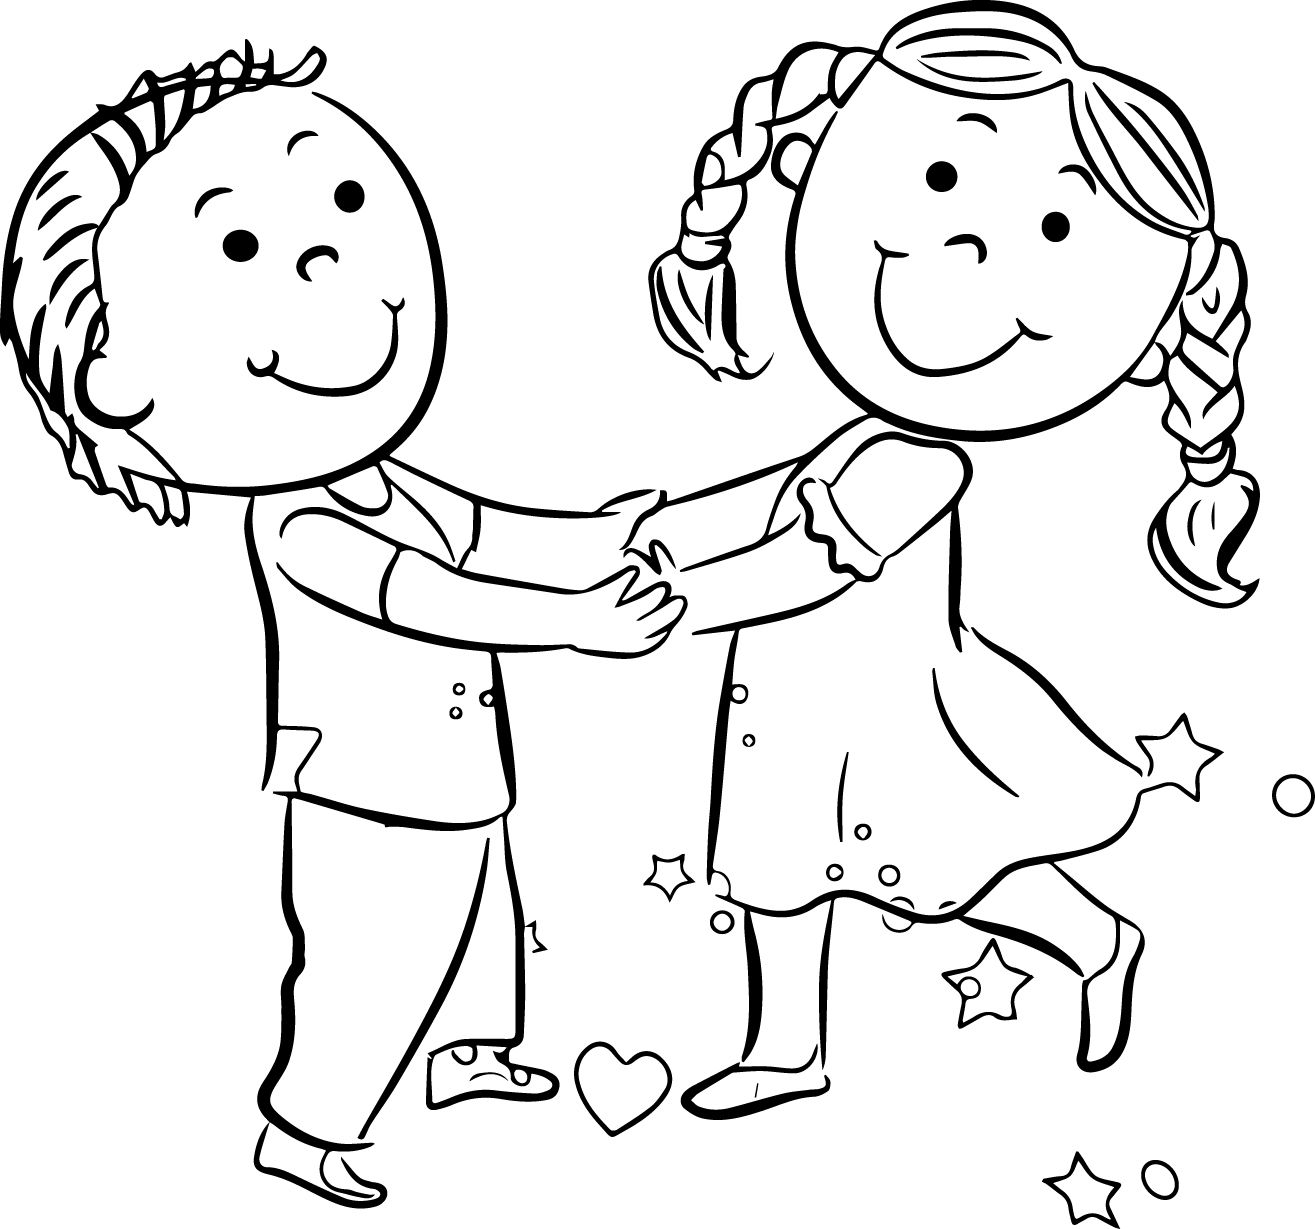 Children Coloring Pages Coloring pages for kids